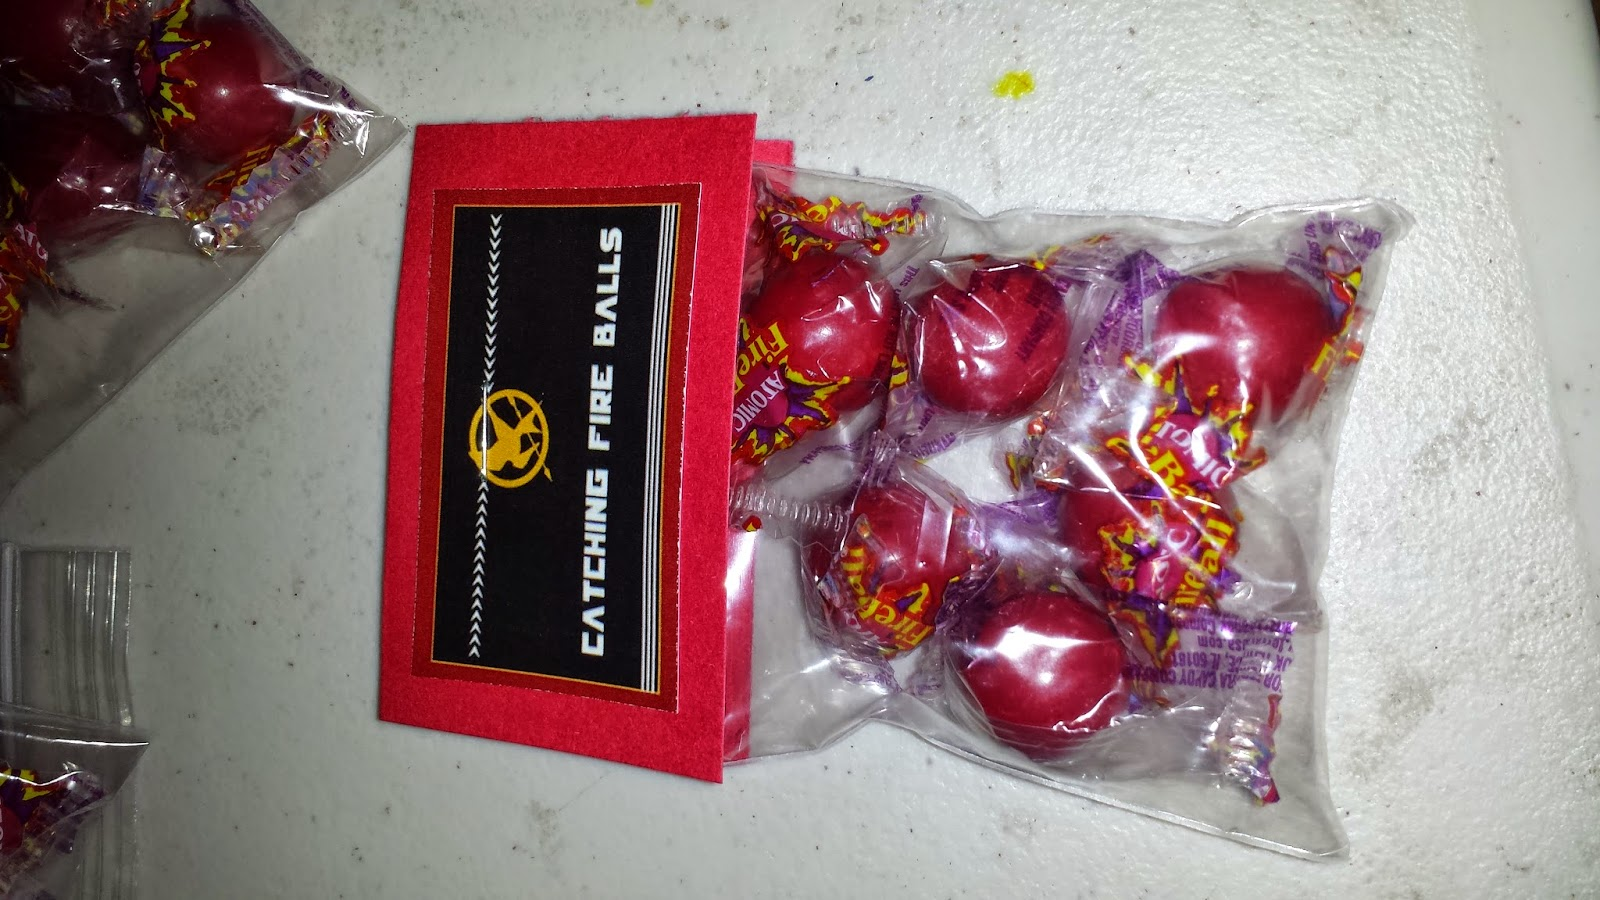 Catching Fire Balls (Fire ball candies) favors